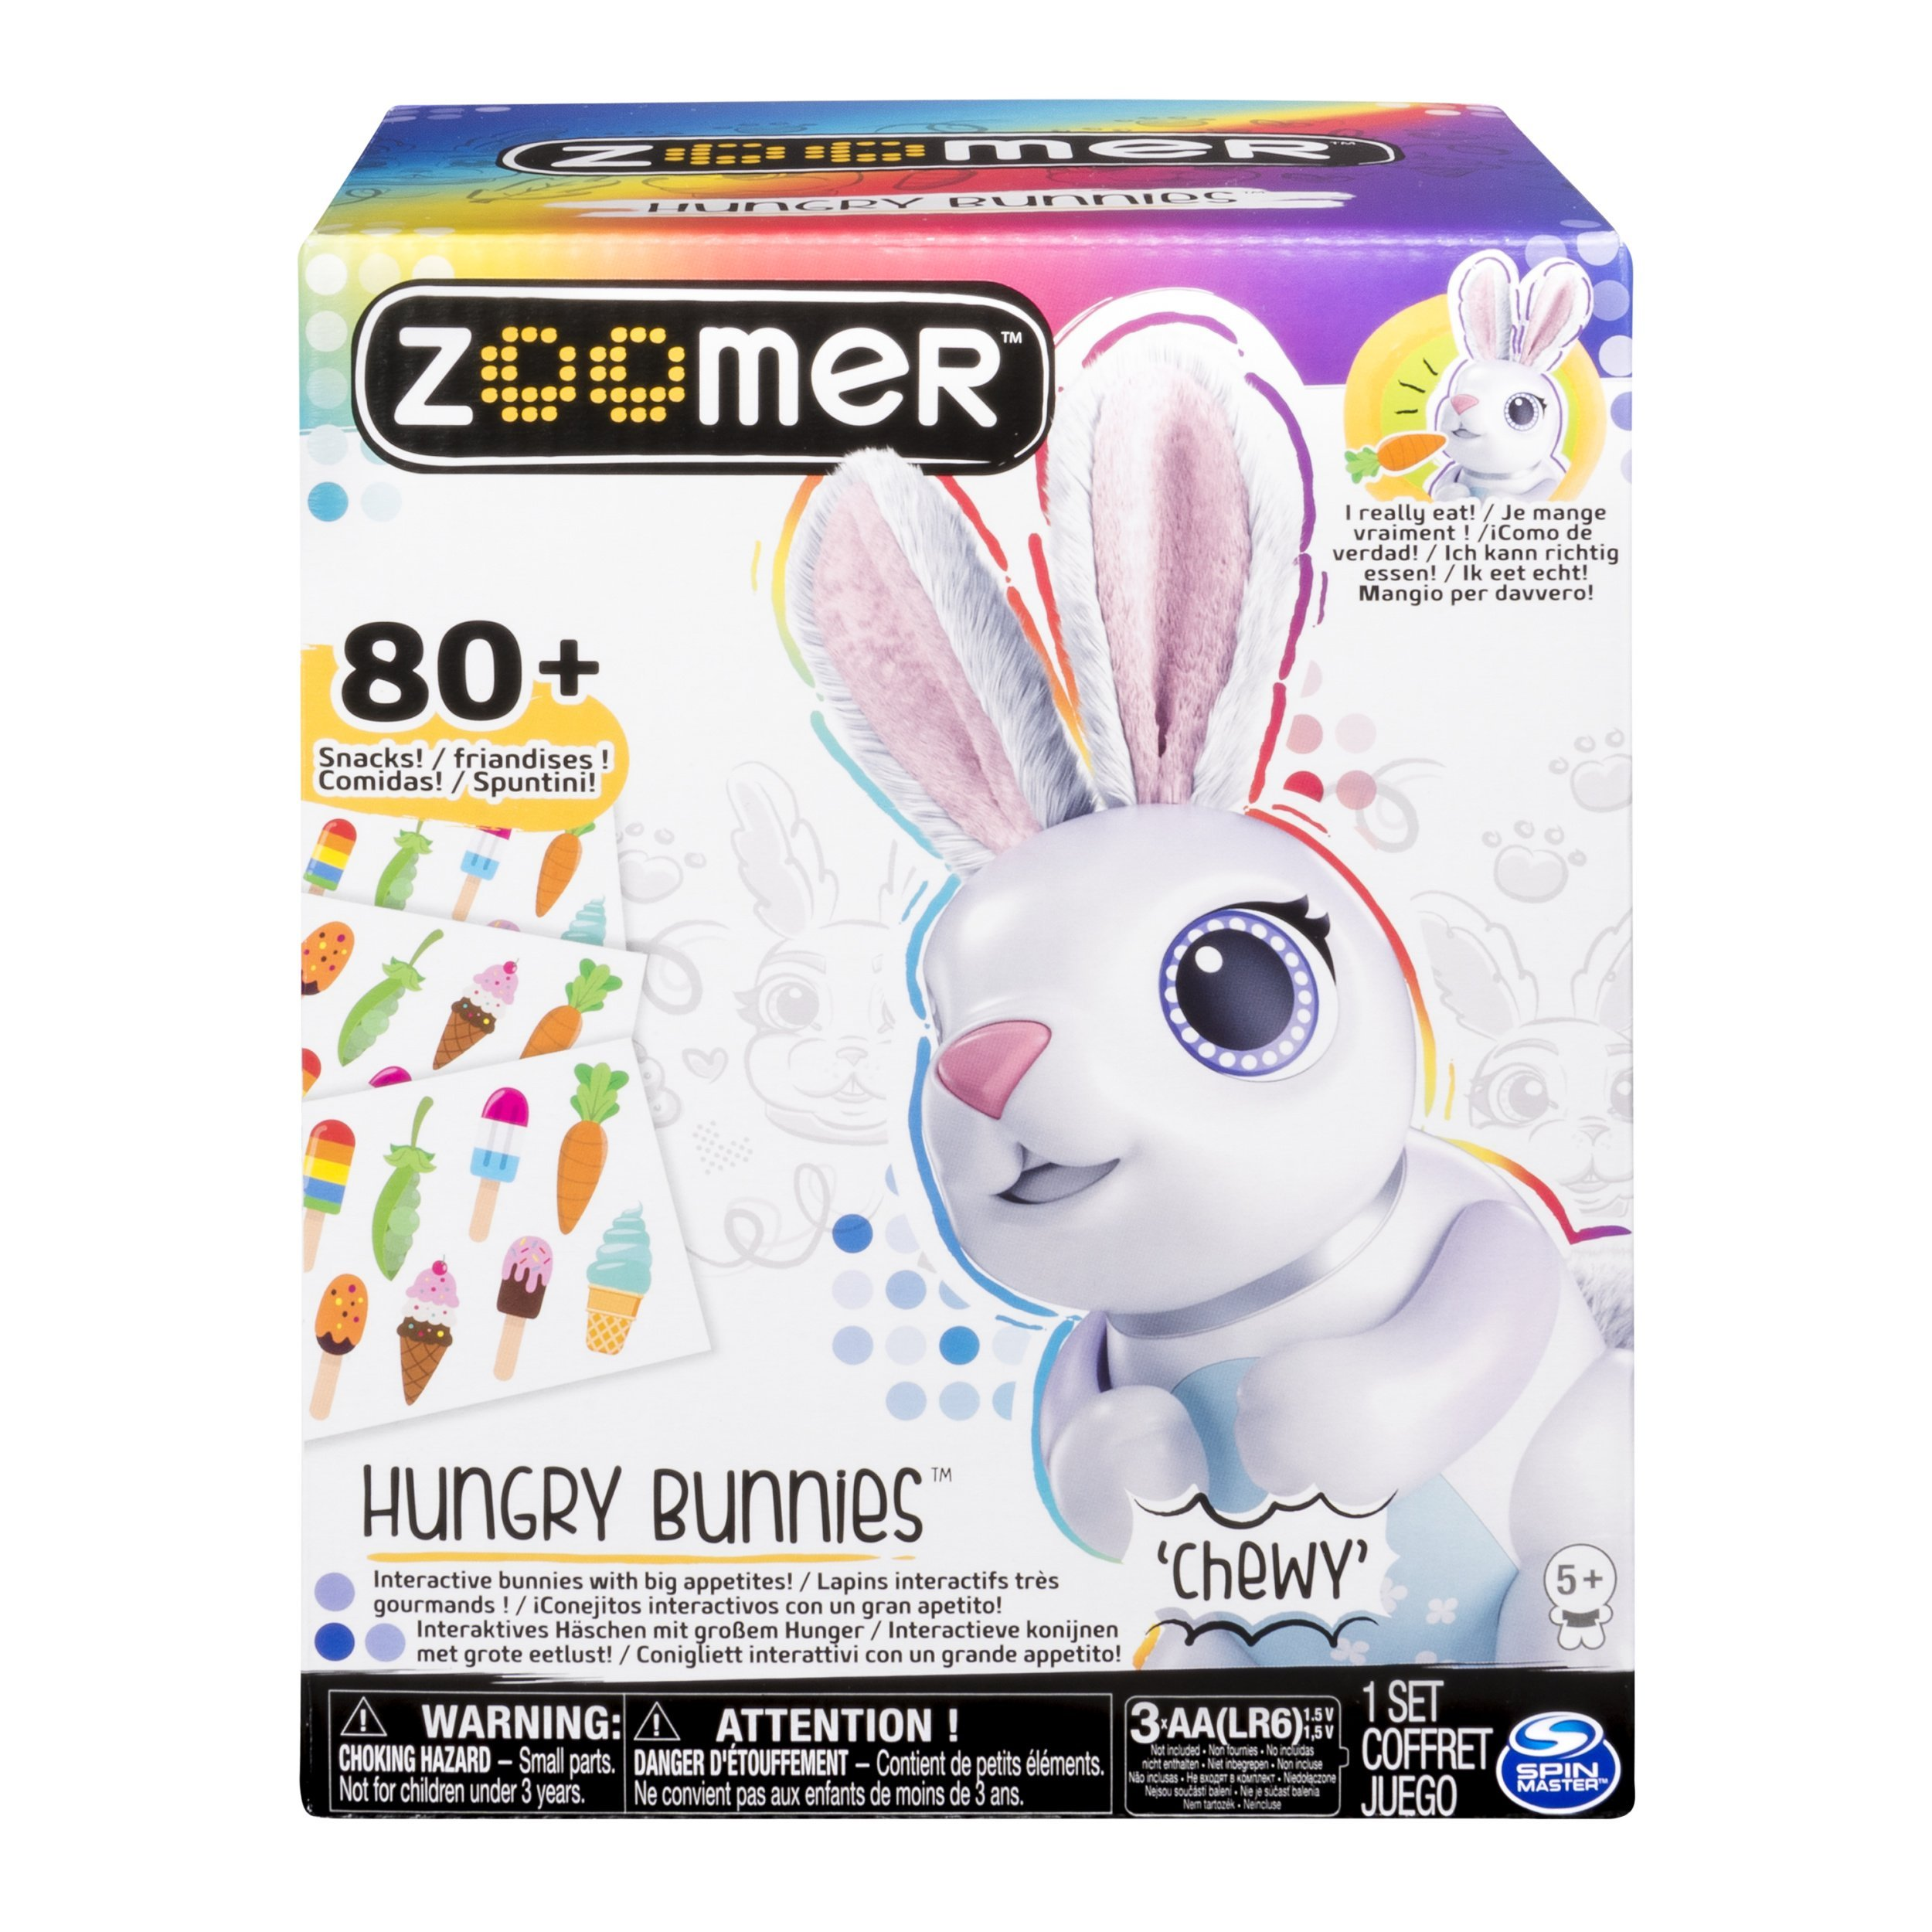 Zoomer Hungry Bunnies Chewy, Interactive Robotic Rabbit That Eats, Ages 5 & Up by Zoomer (Image #2)